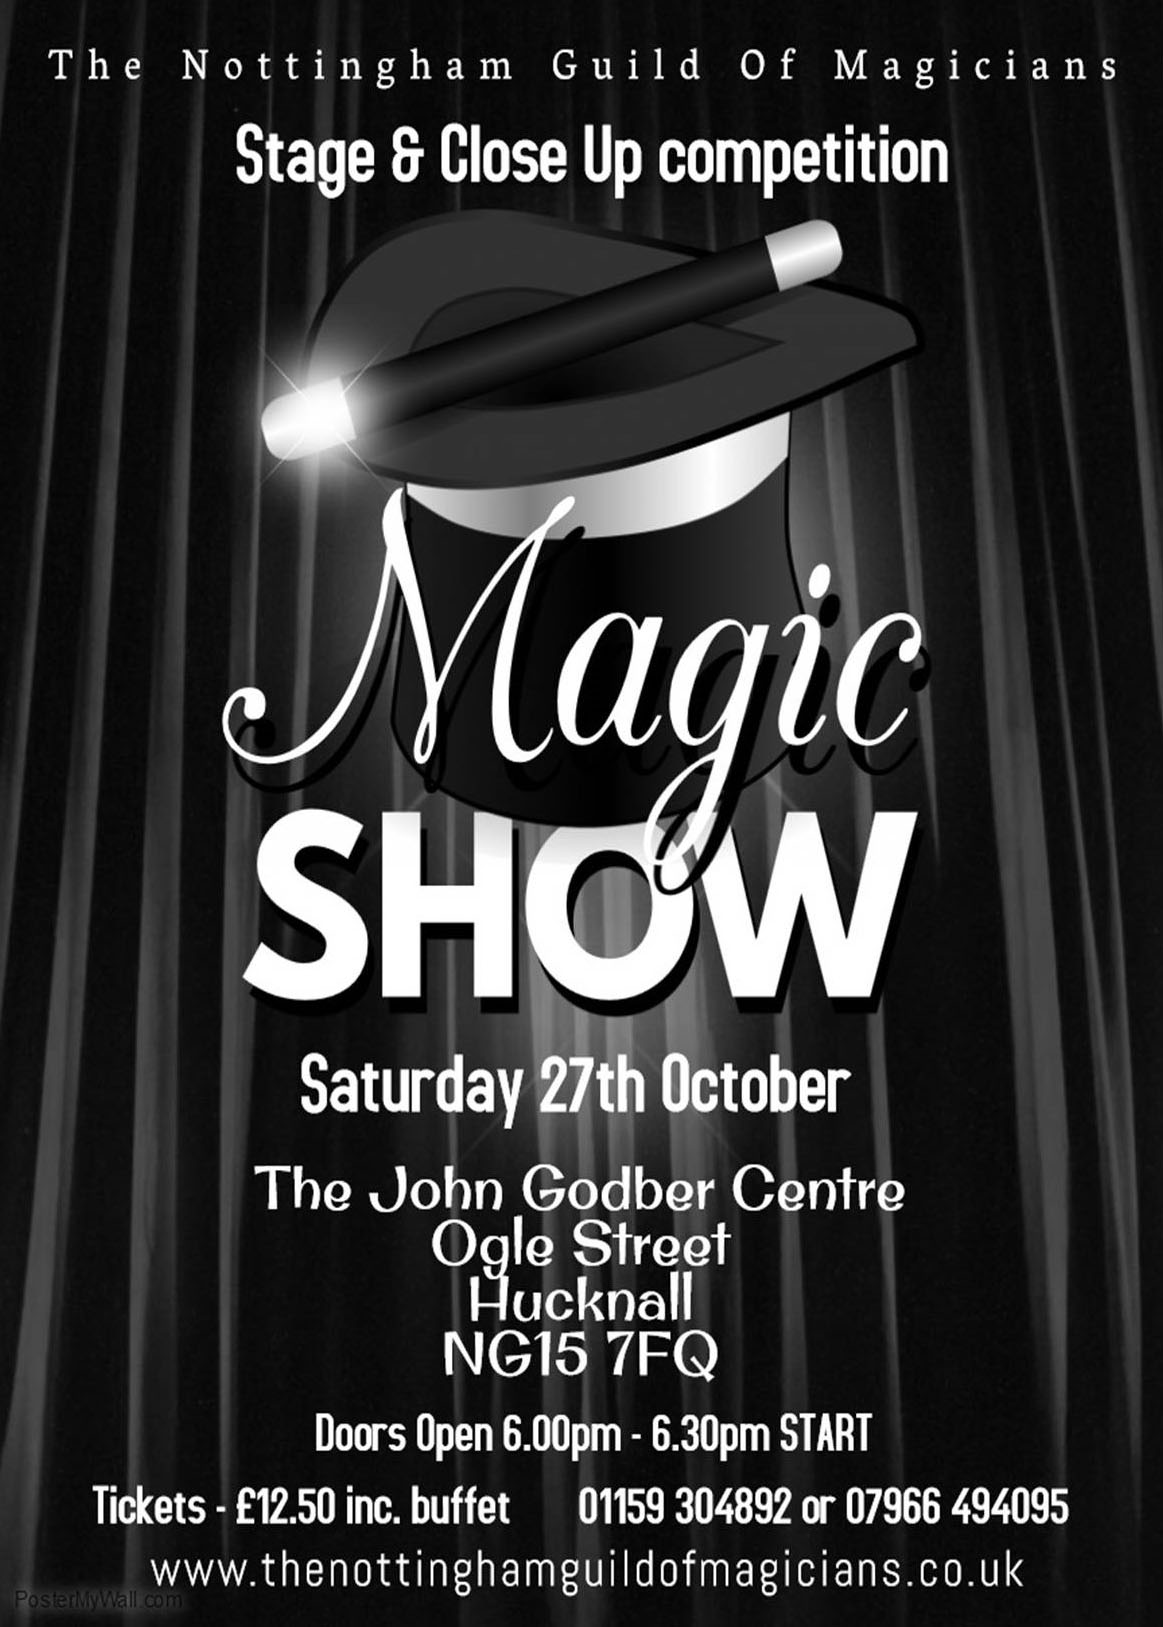 The Nottingham Guild of Magicians' Magic Show poster